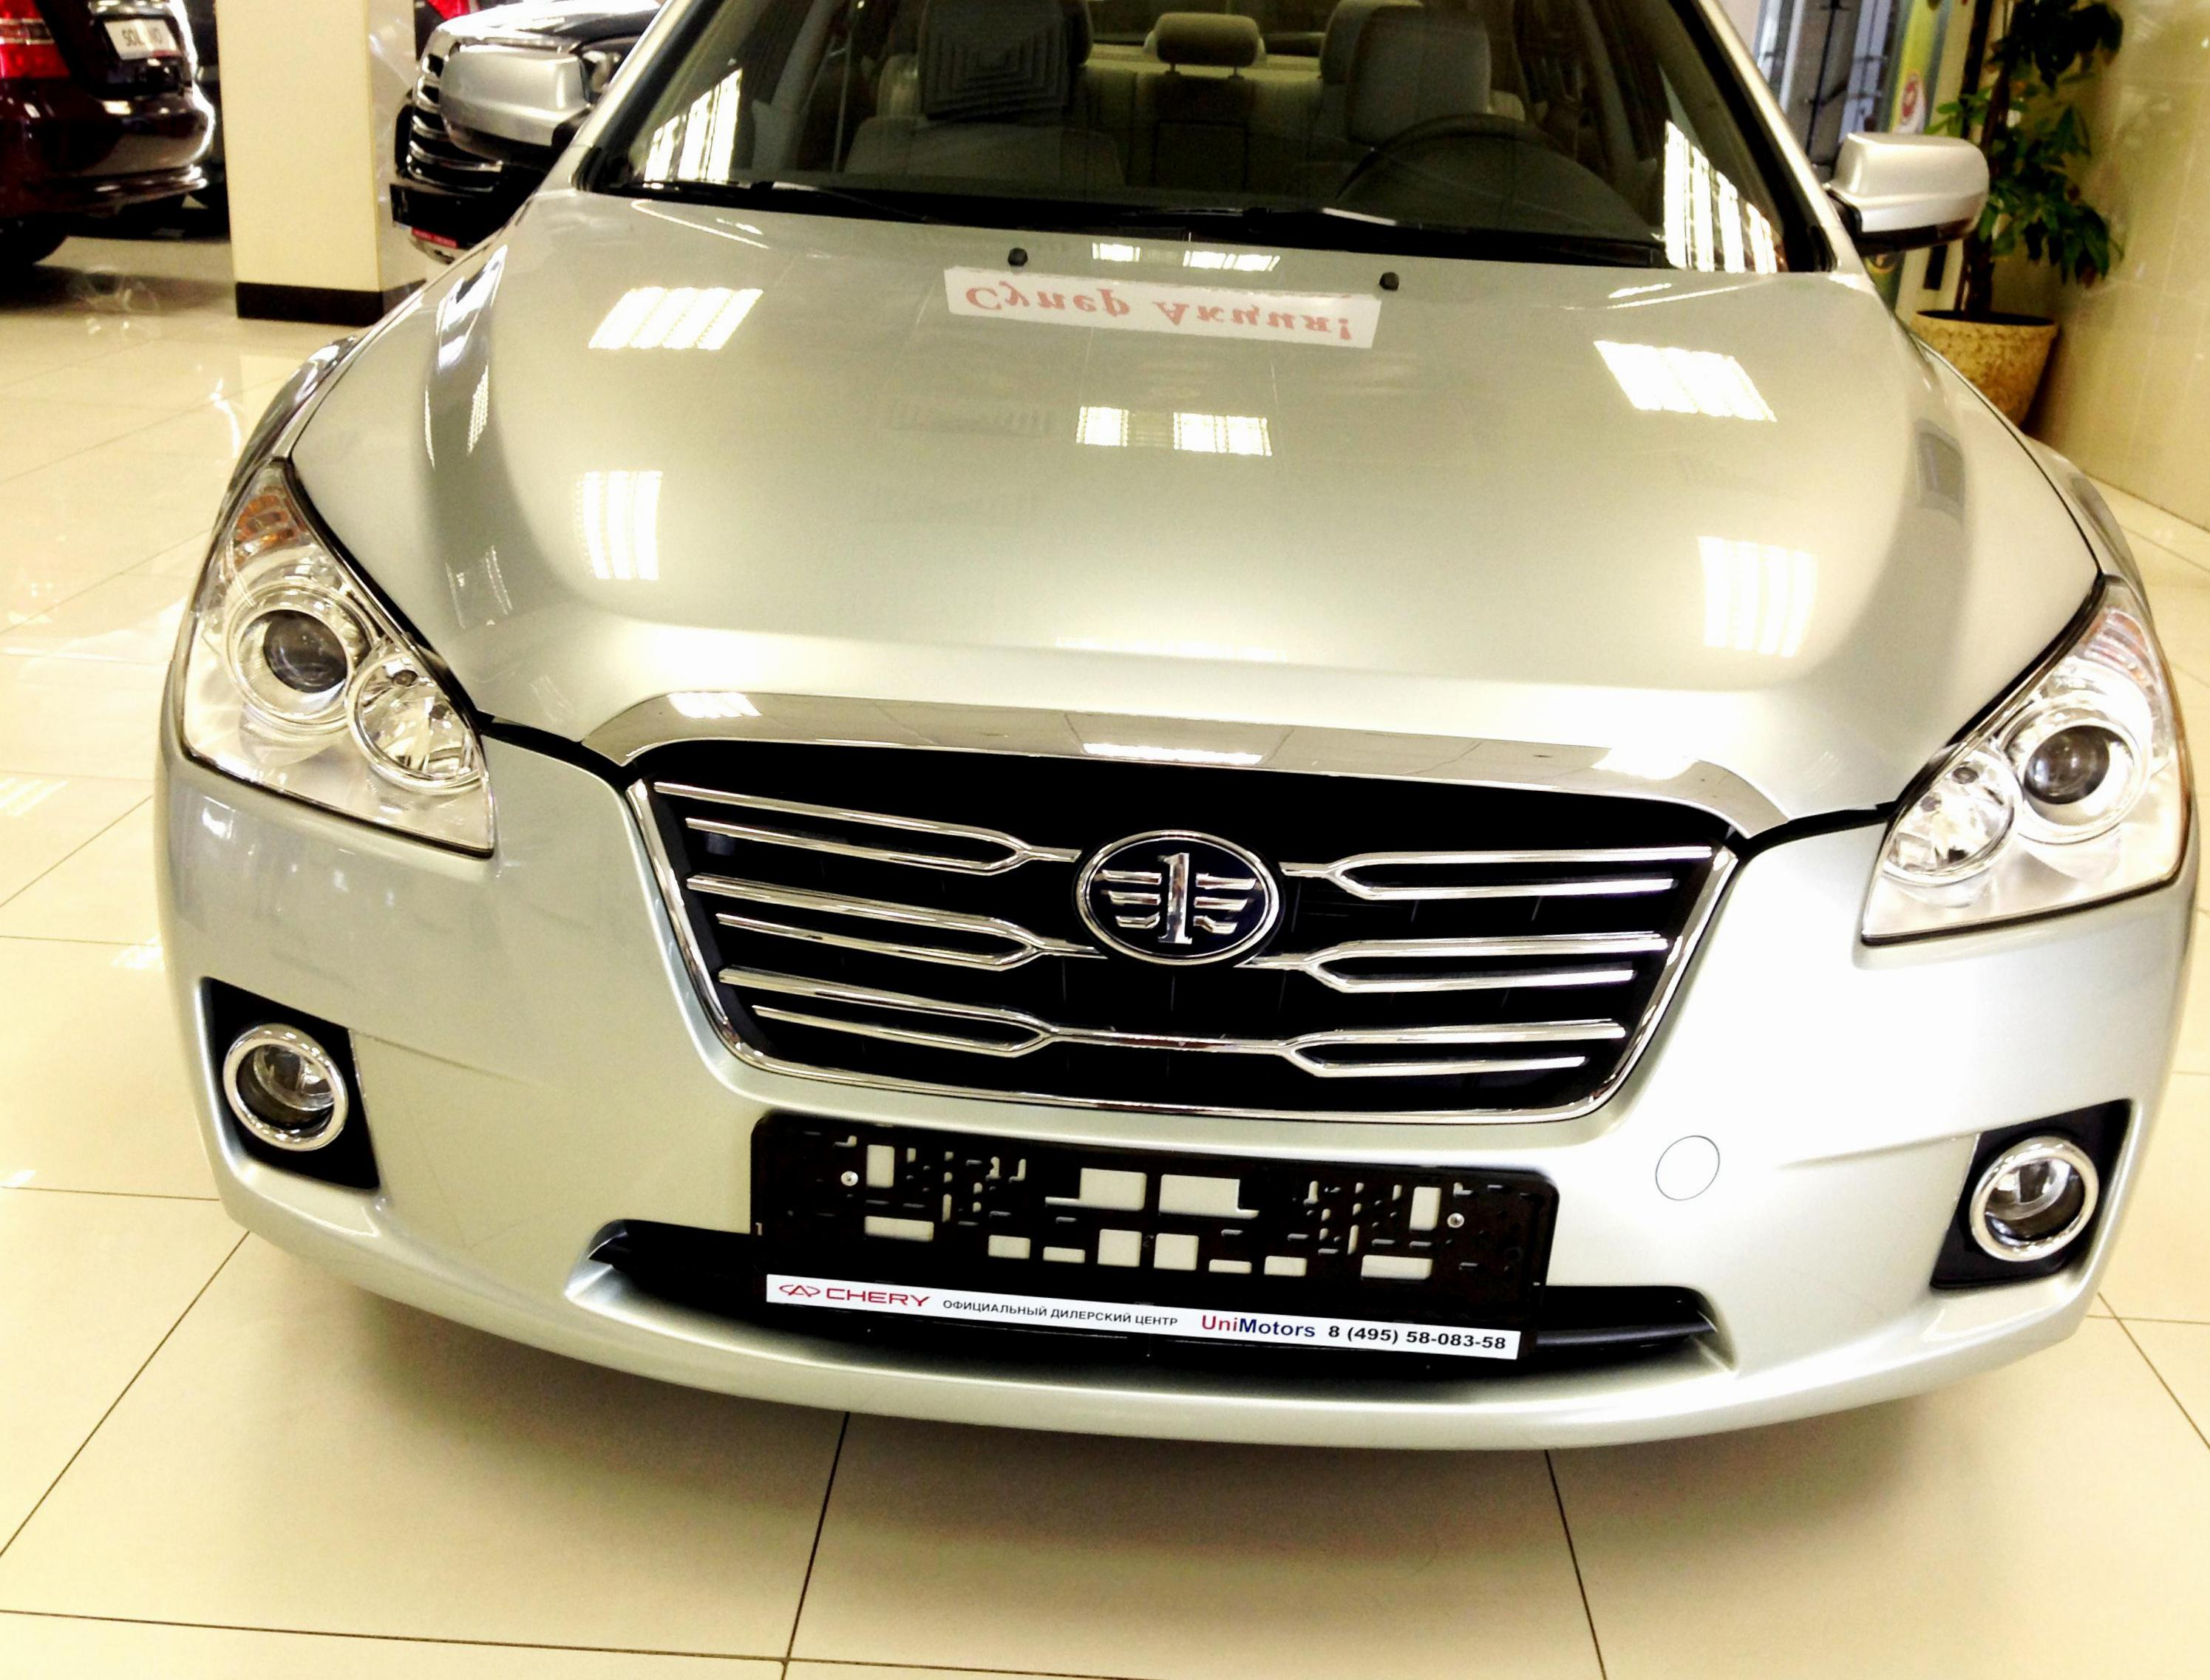 FAW Besturn B50: reviews and specifications (photo)